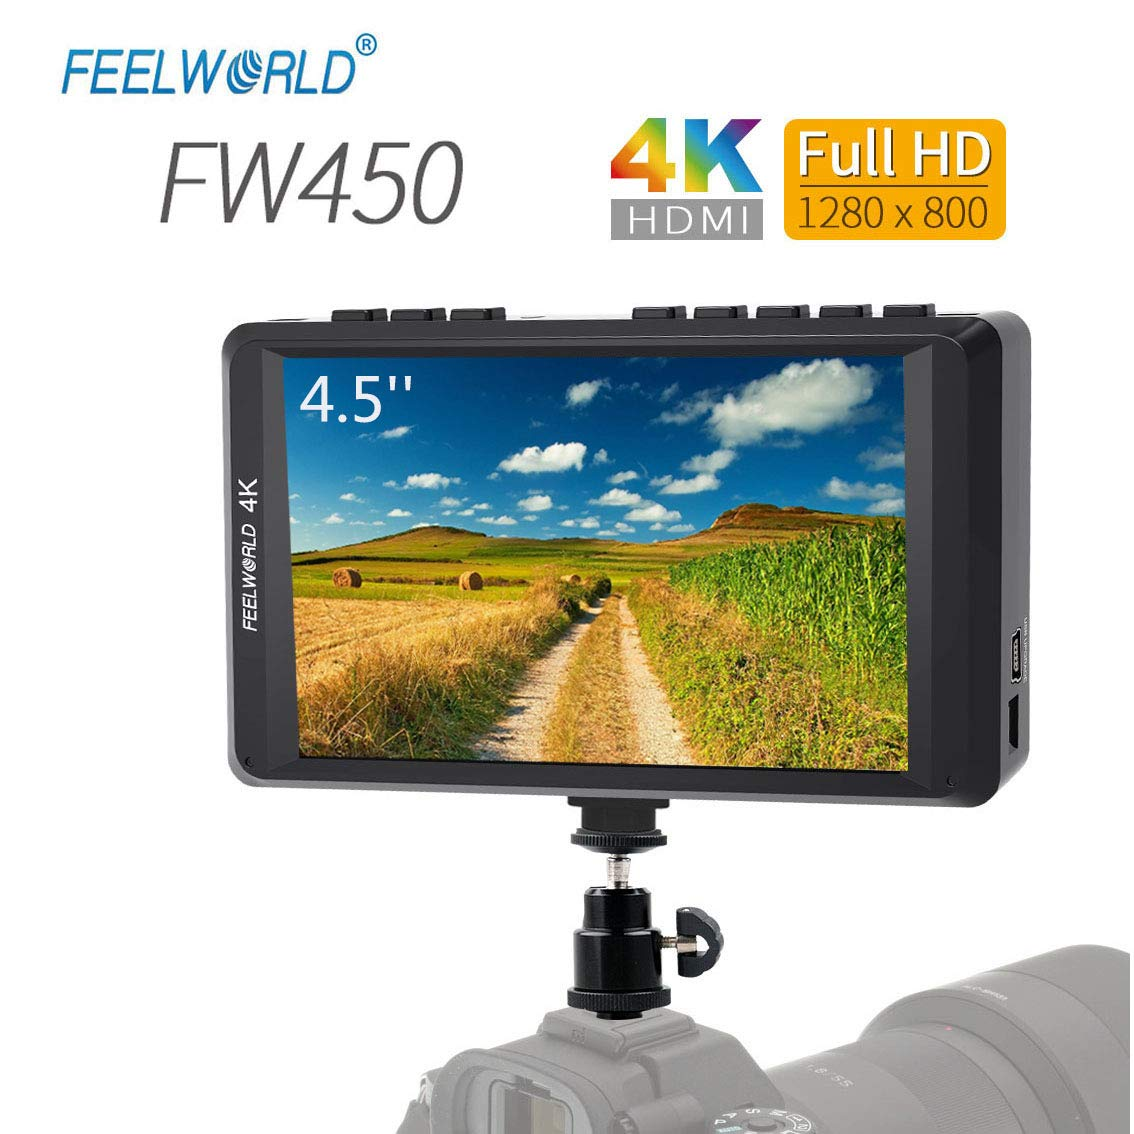 FEELWORLD FW450 4.5 Inch DSLR On Camera Field Monitor 4K HDMI Input Output Small HD Focus 1280x800 Ultra Lightweight Video Assist by FEELWORLD